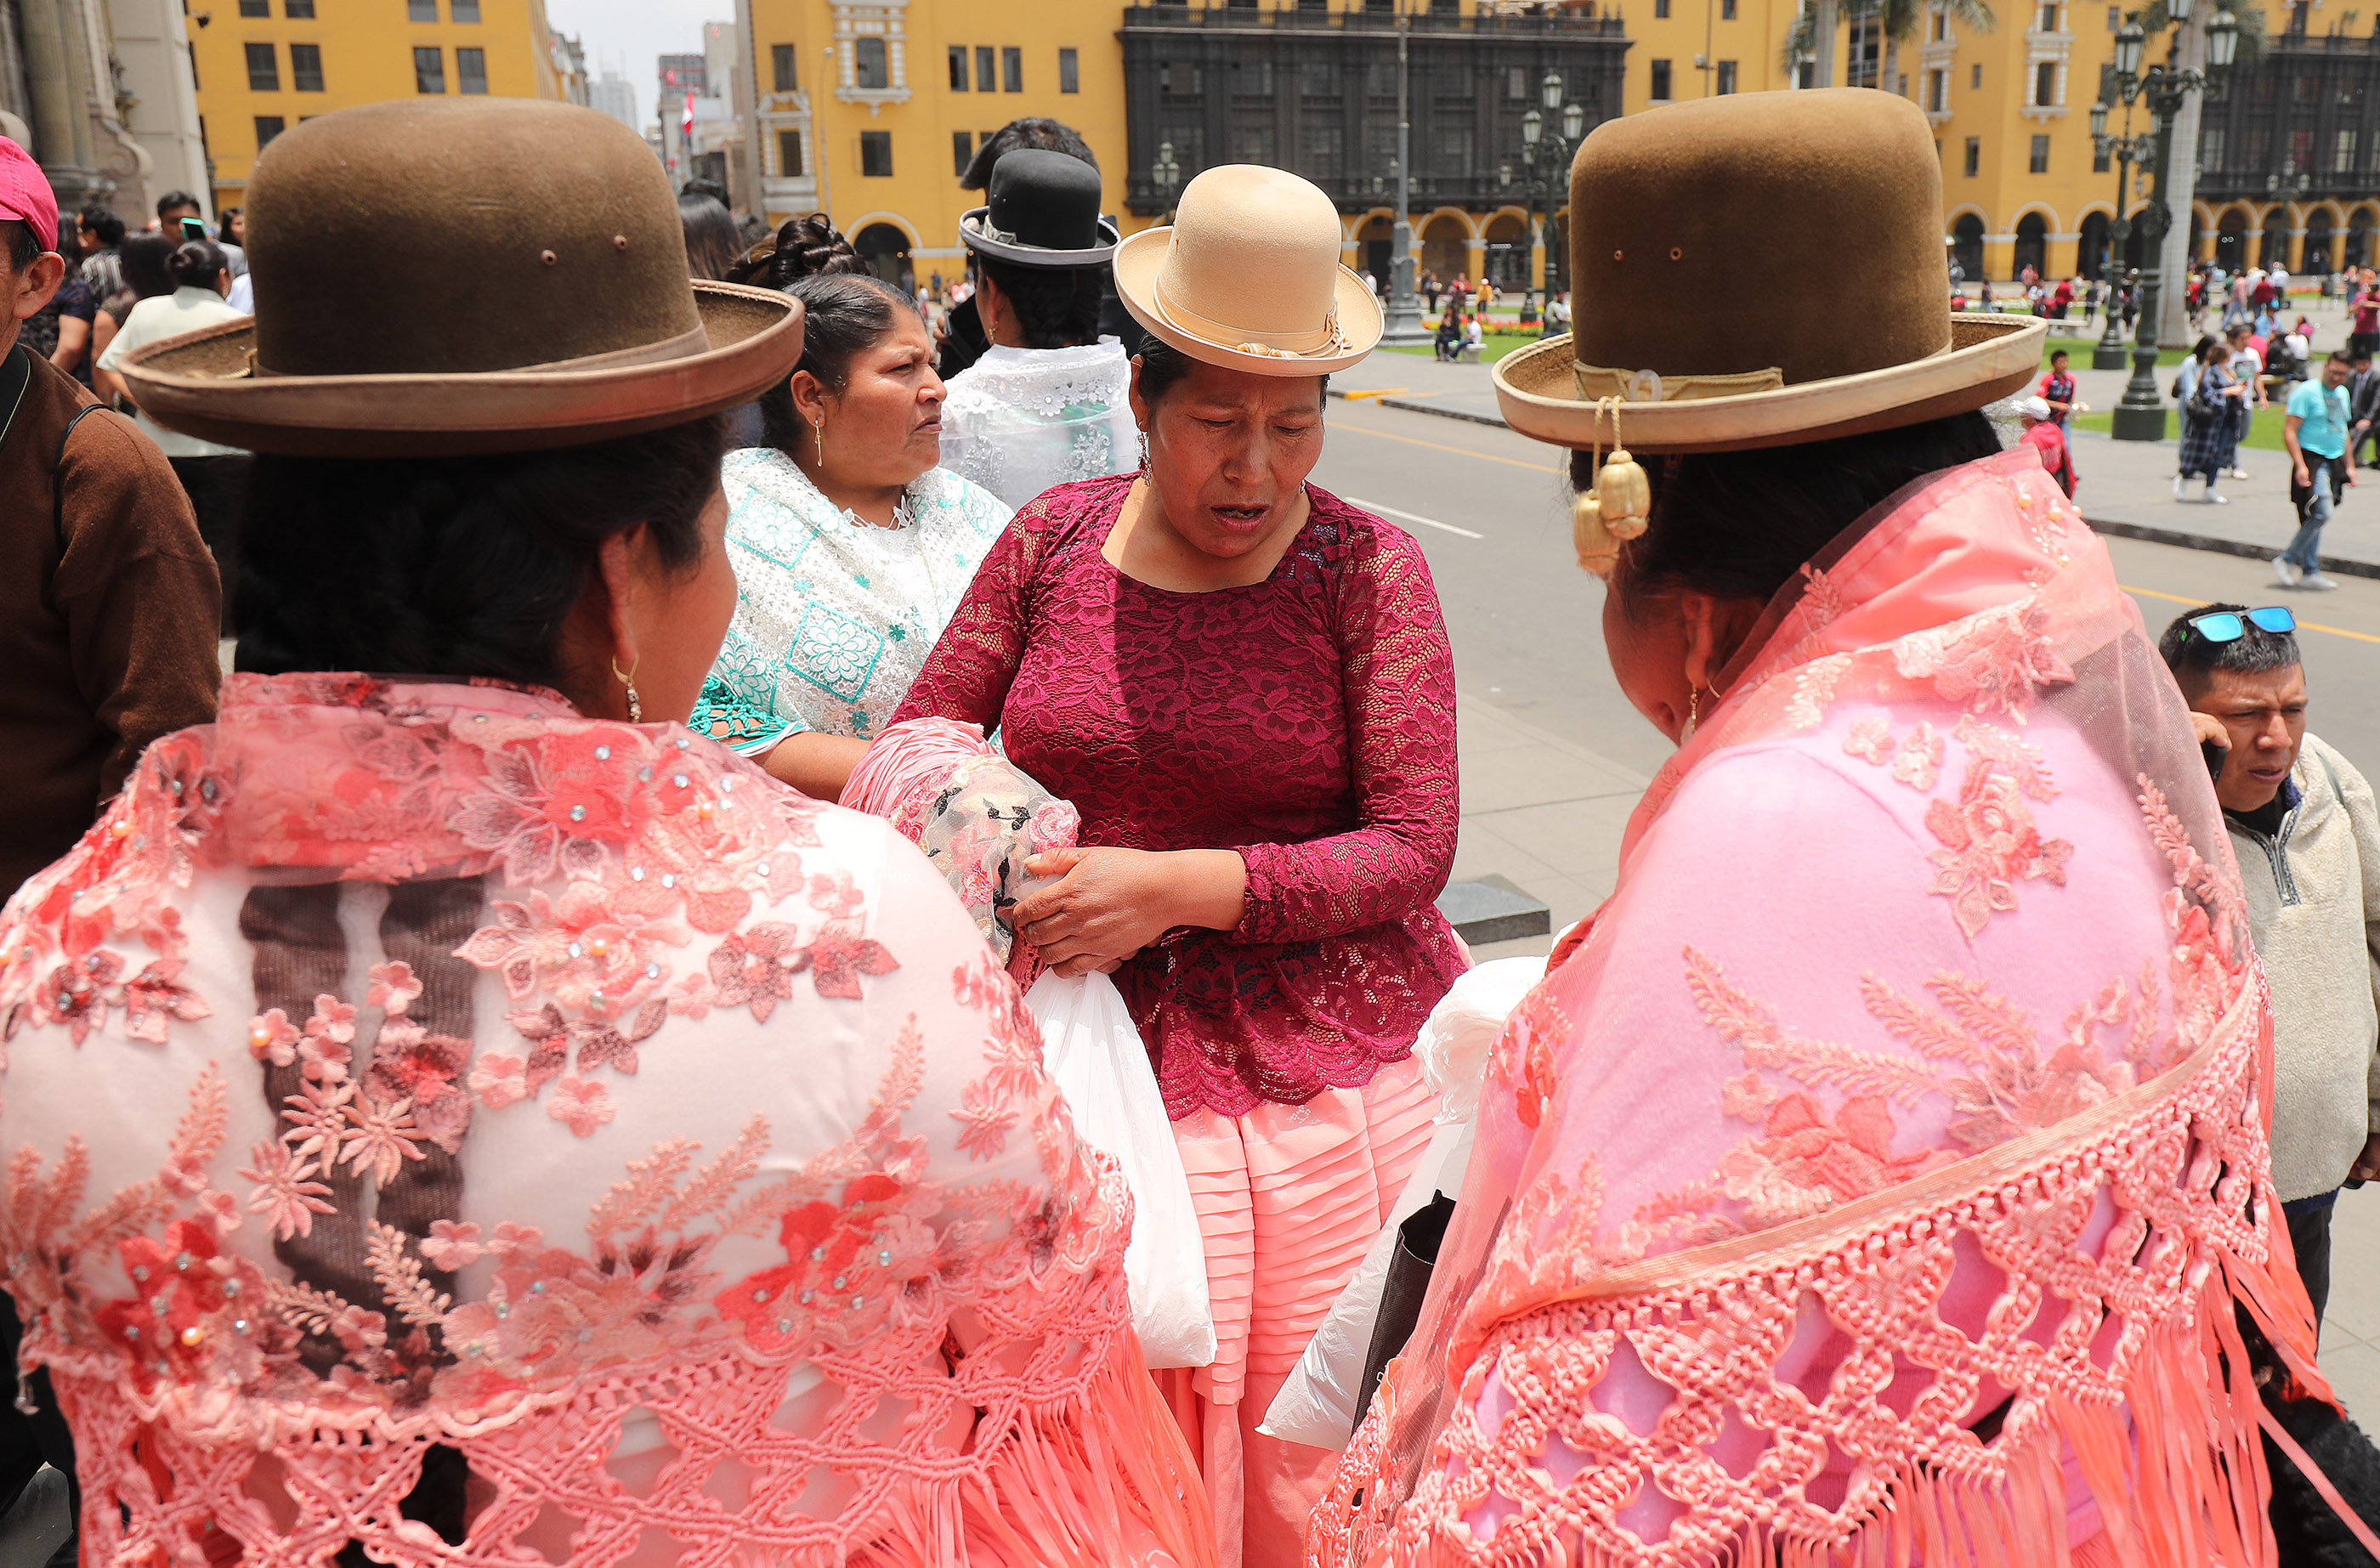 Peruvian women wear traditional dress for a Catholic wedding in Lima, Peru, on Oct. 21, 2018.